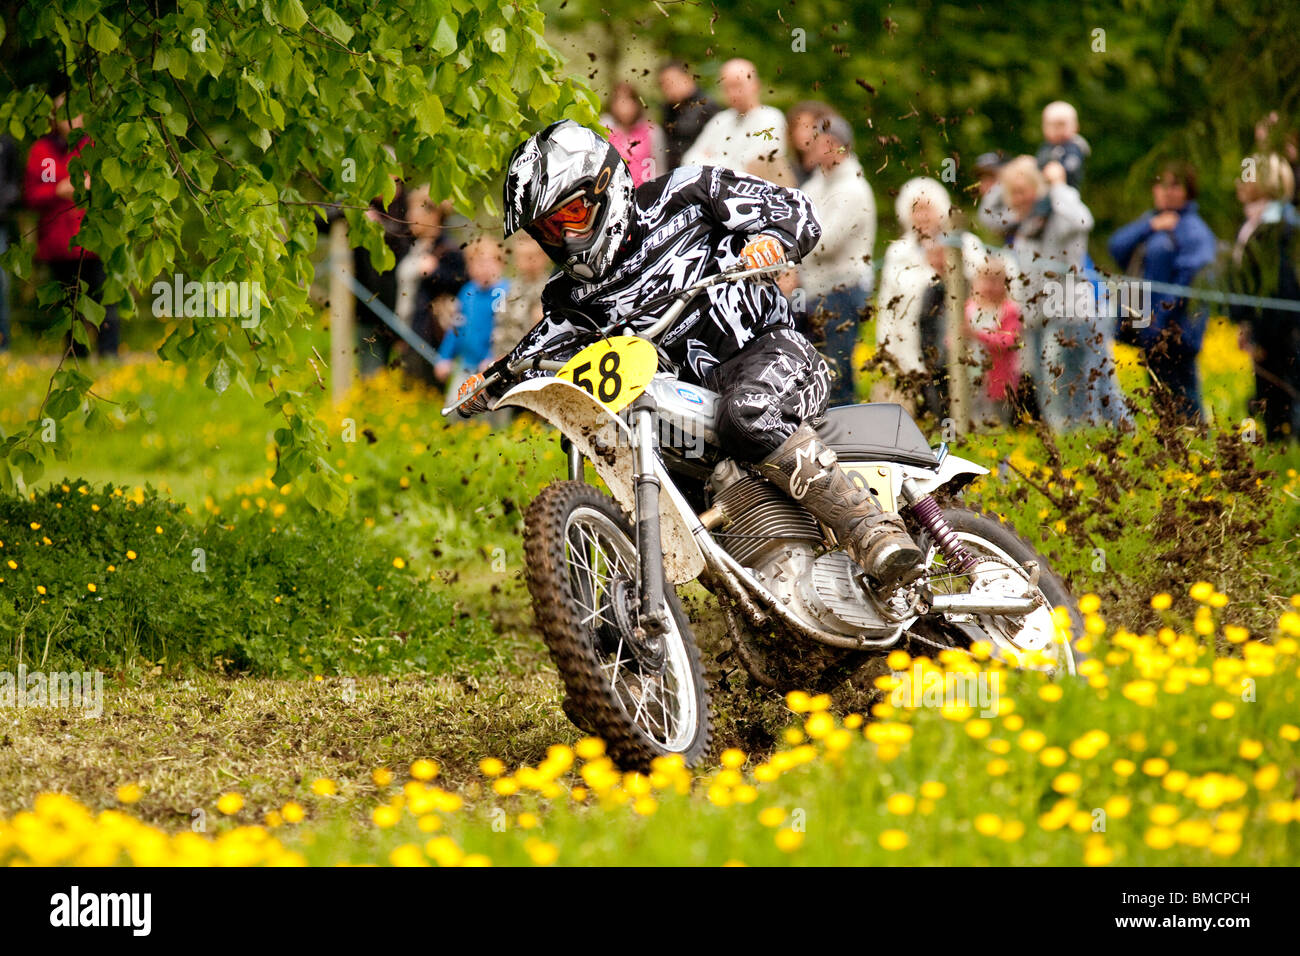 Classic Motocross Demo At The Barony College Open Day Motorcycle Racing  Through Field Of Spring Buttercups